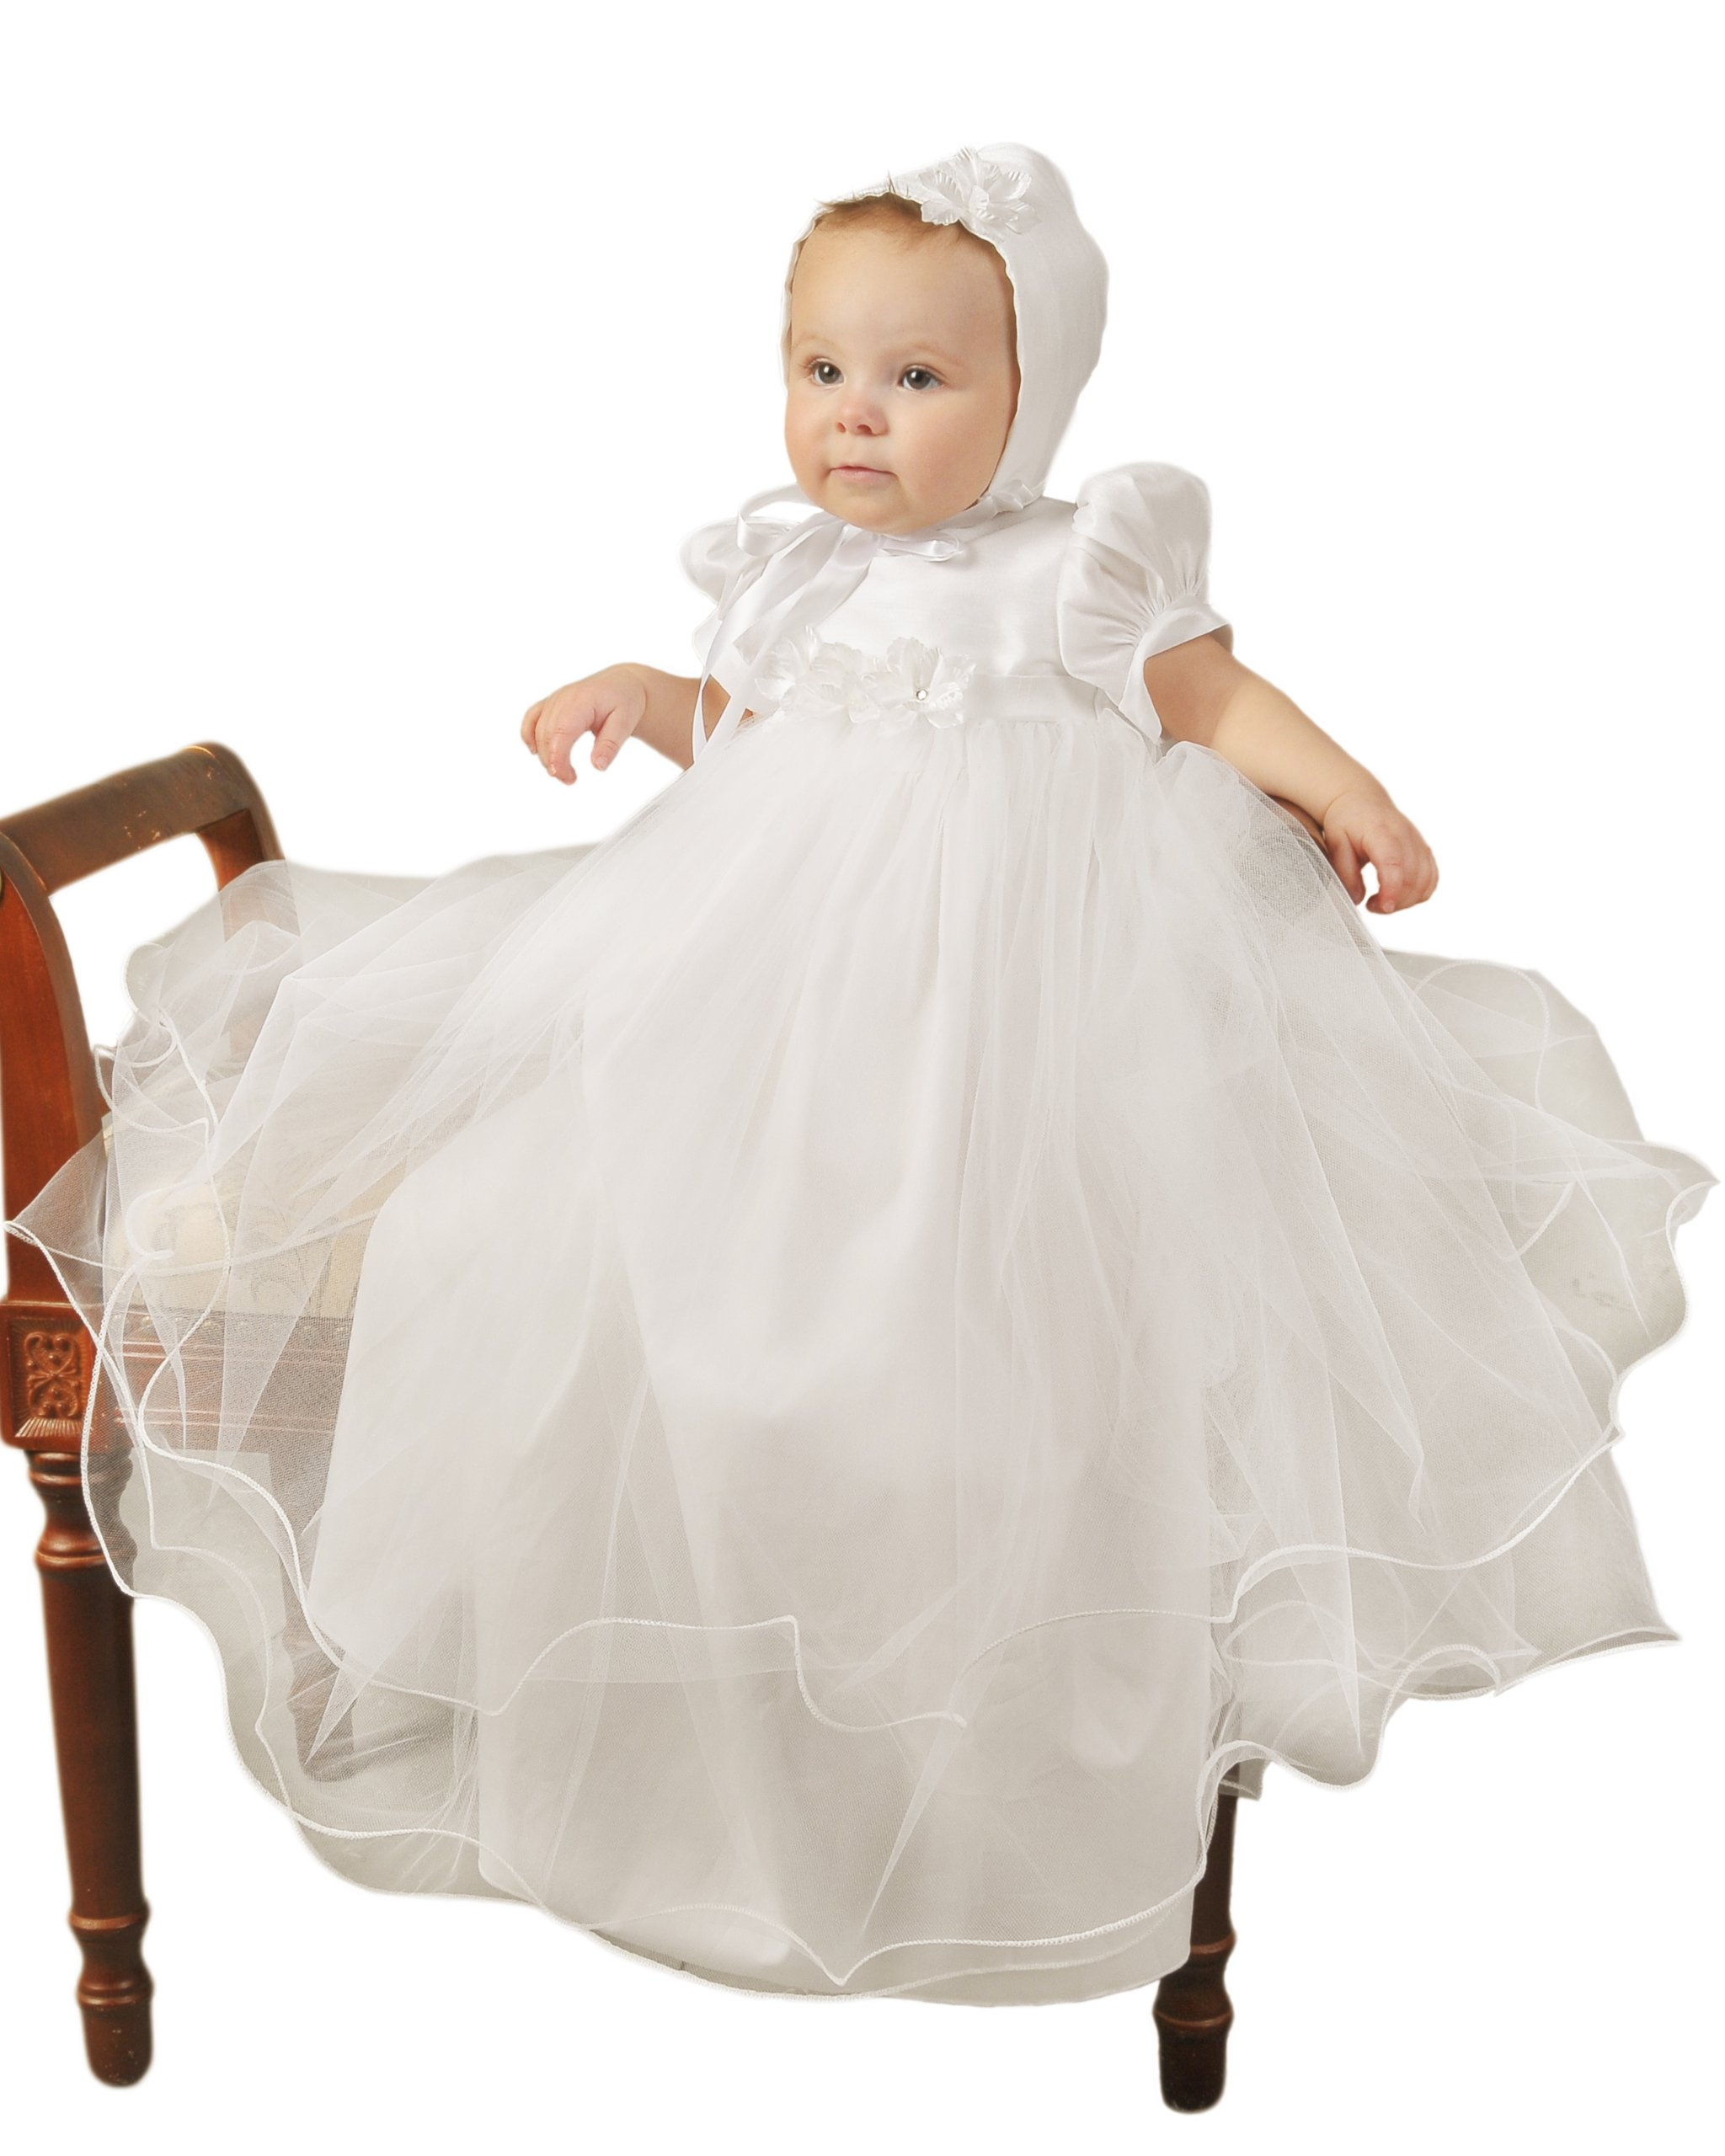 Shanna 3 Month Girls Christening Baptism Blessing Gowns for Girls, Made in USA by One Small Child